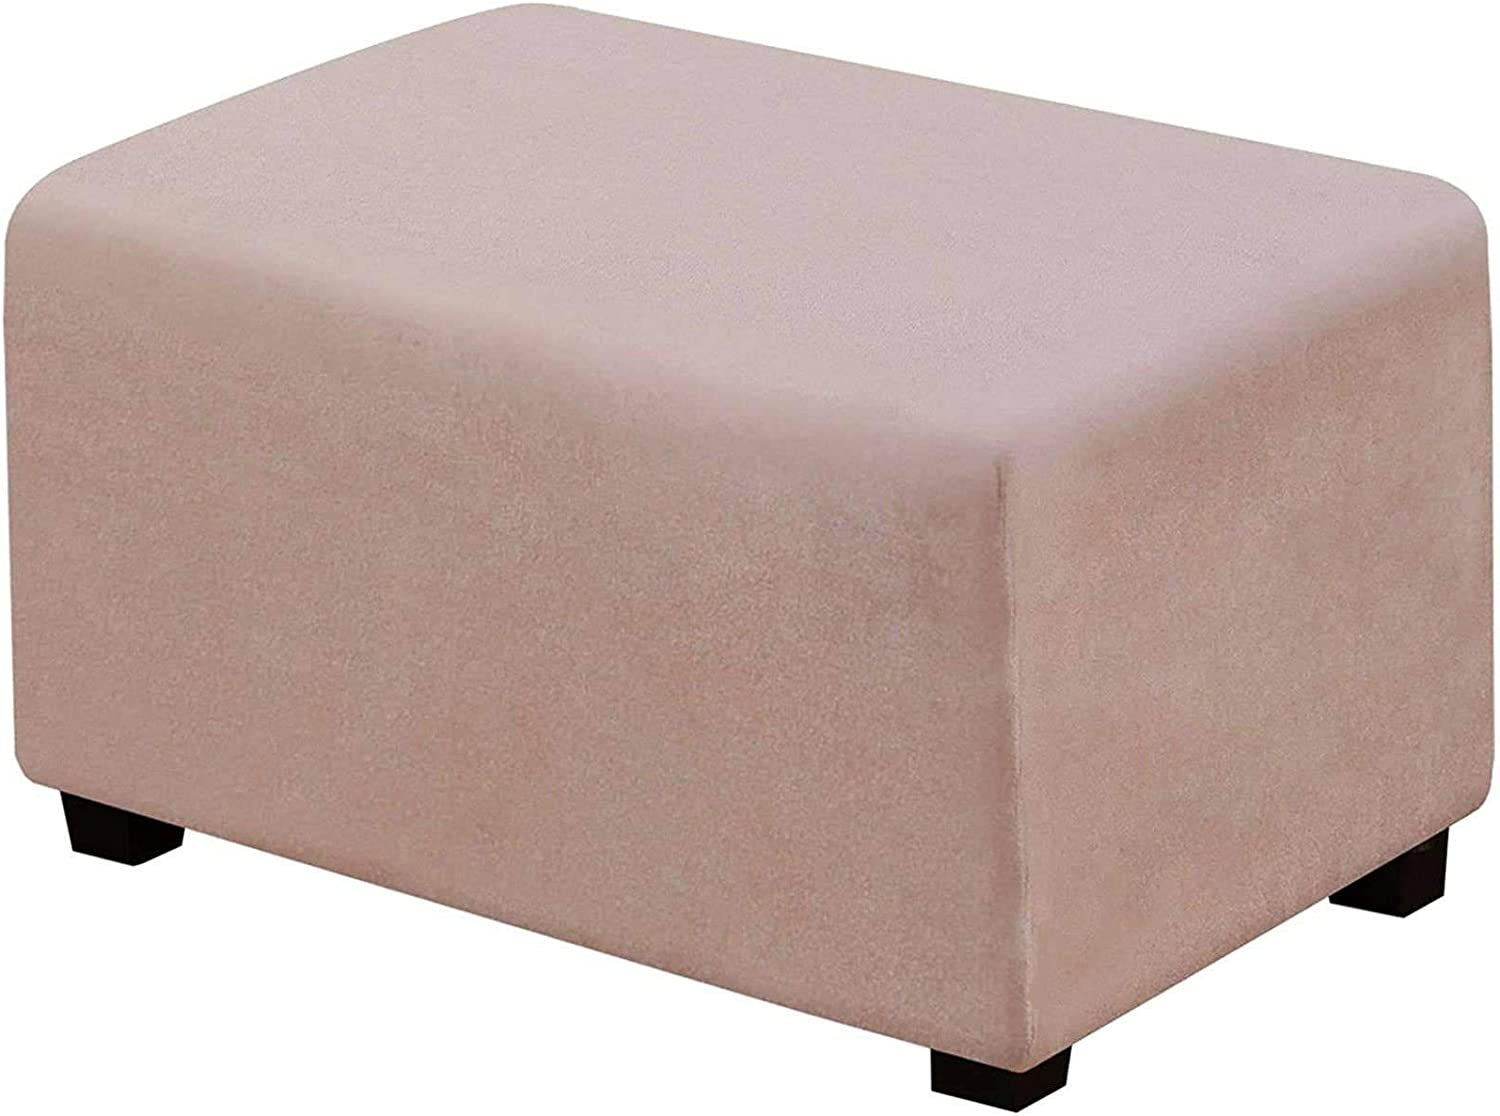 Ottoman Slipcovers Silver Fox Velvet Rectangle Stretch Footstool Protector Cover